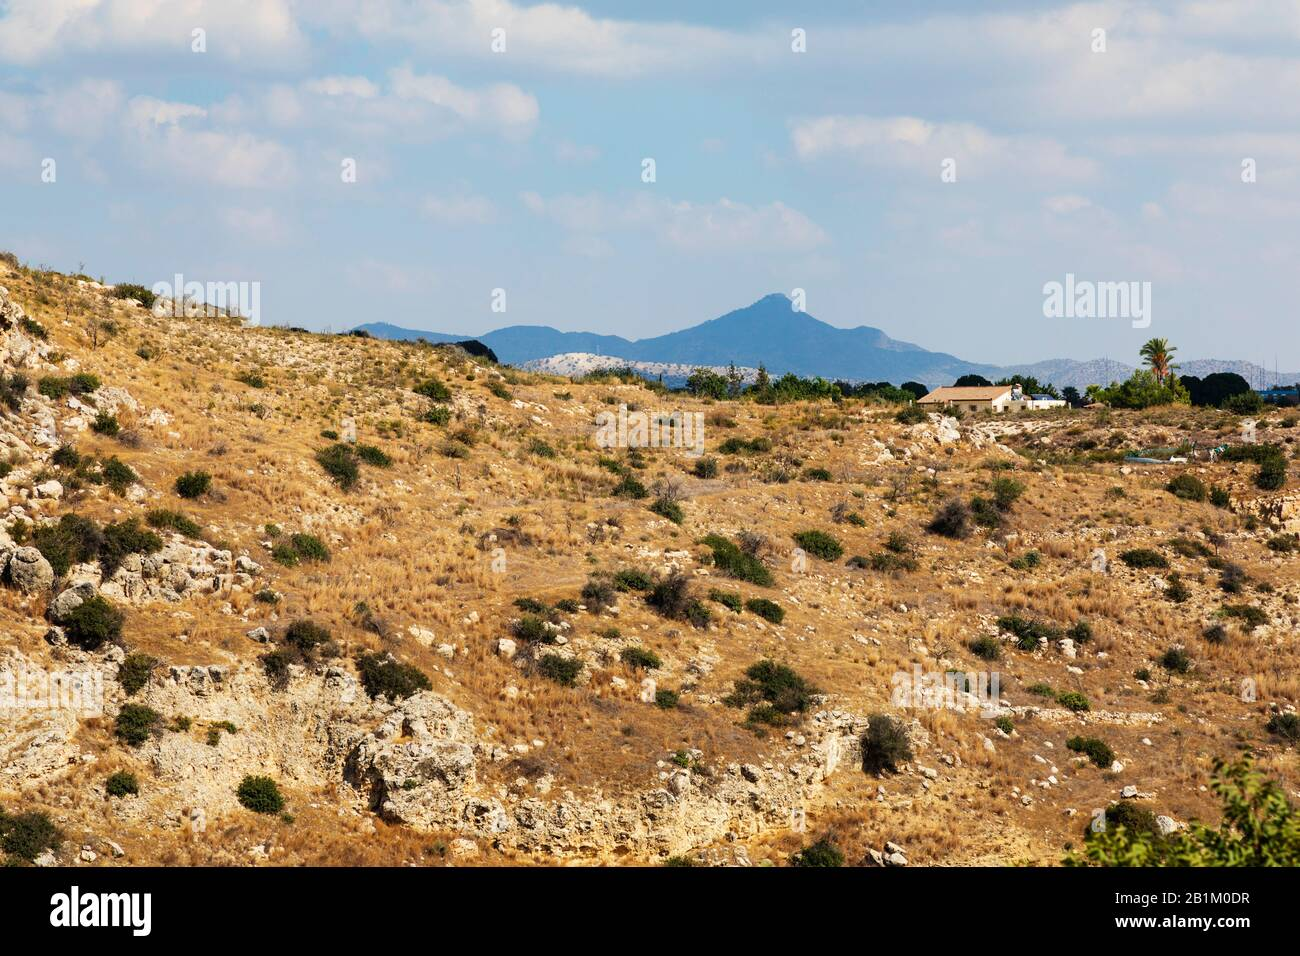 Wasteland behind the neolithic settlement of Choirokoitia, with Stavrovouni monestery in the distance.  Cyprus. Cyprus 2018. Stock Photo